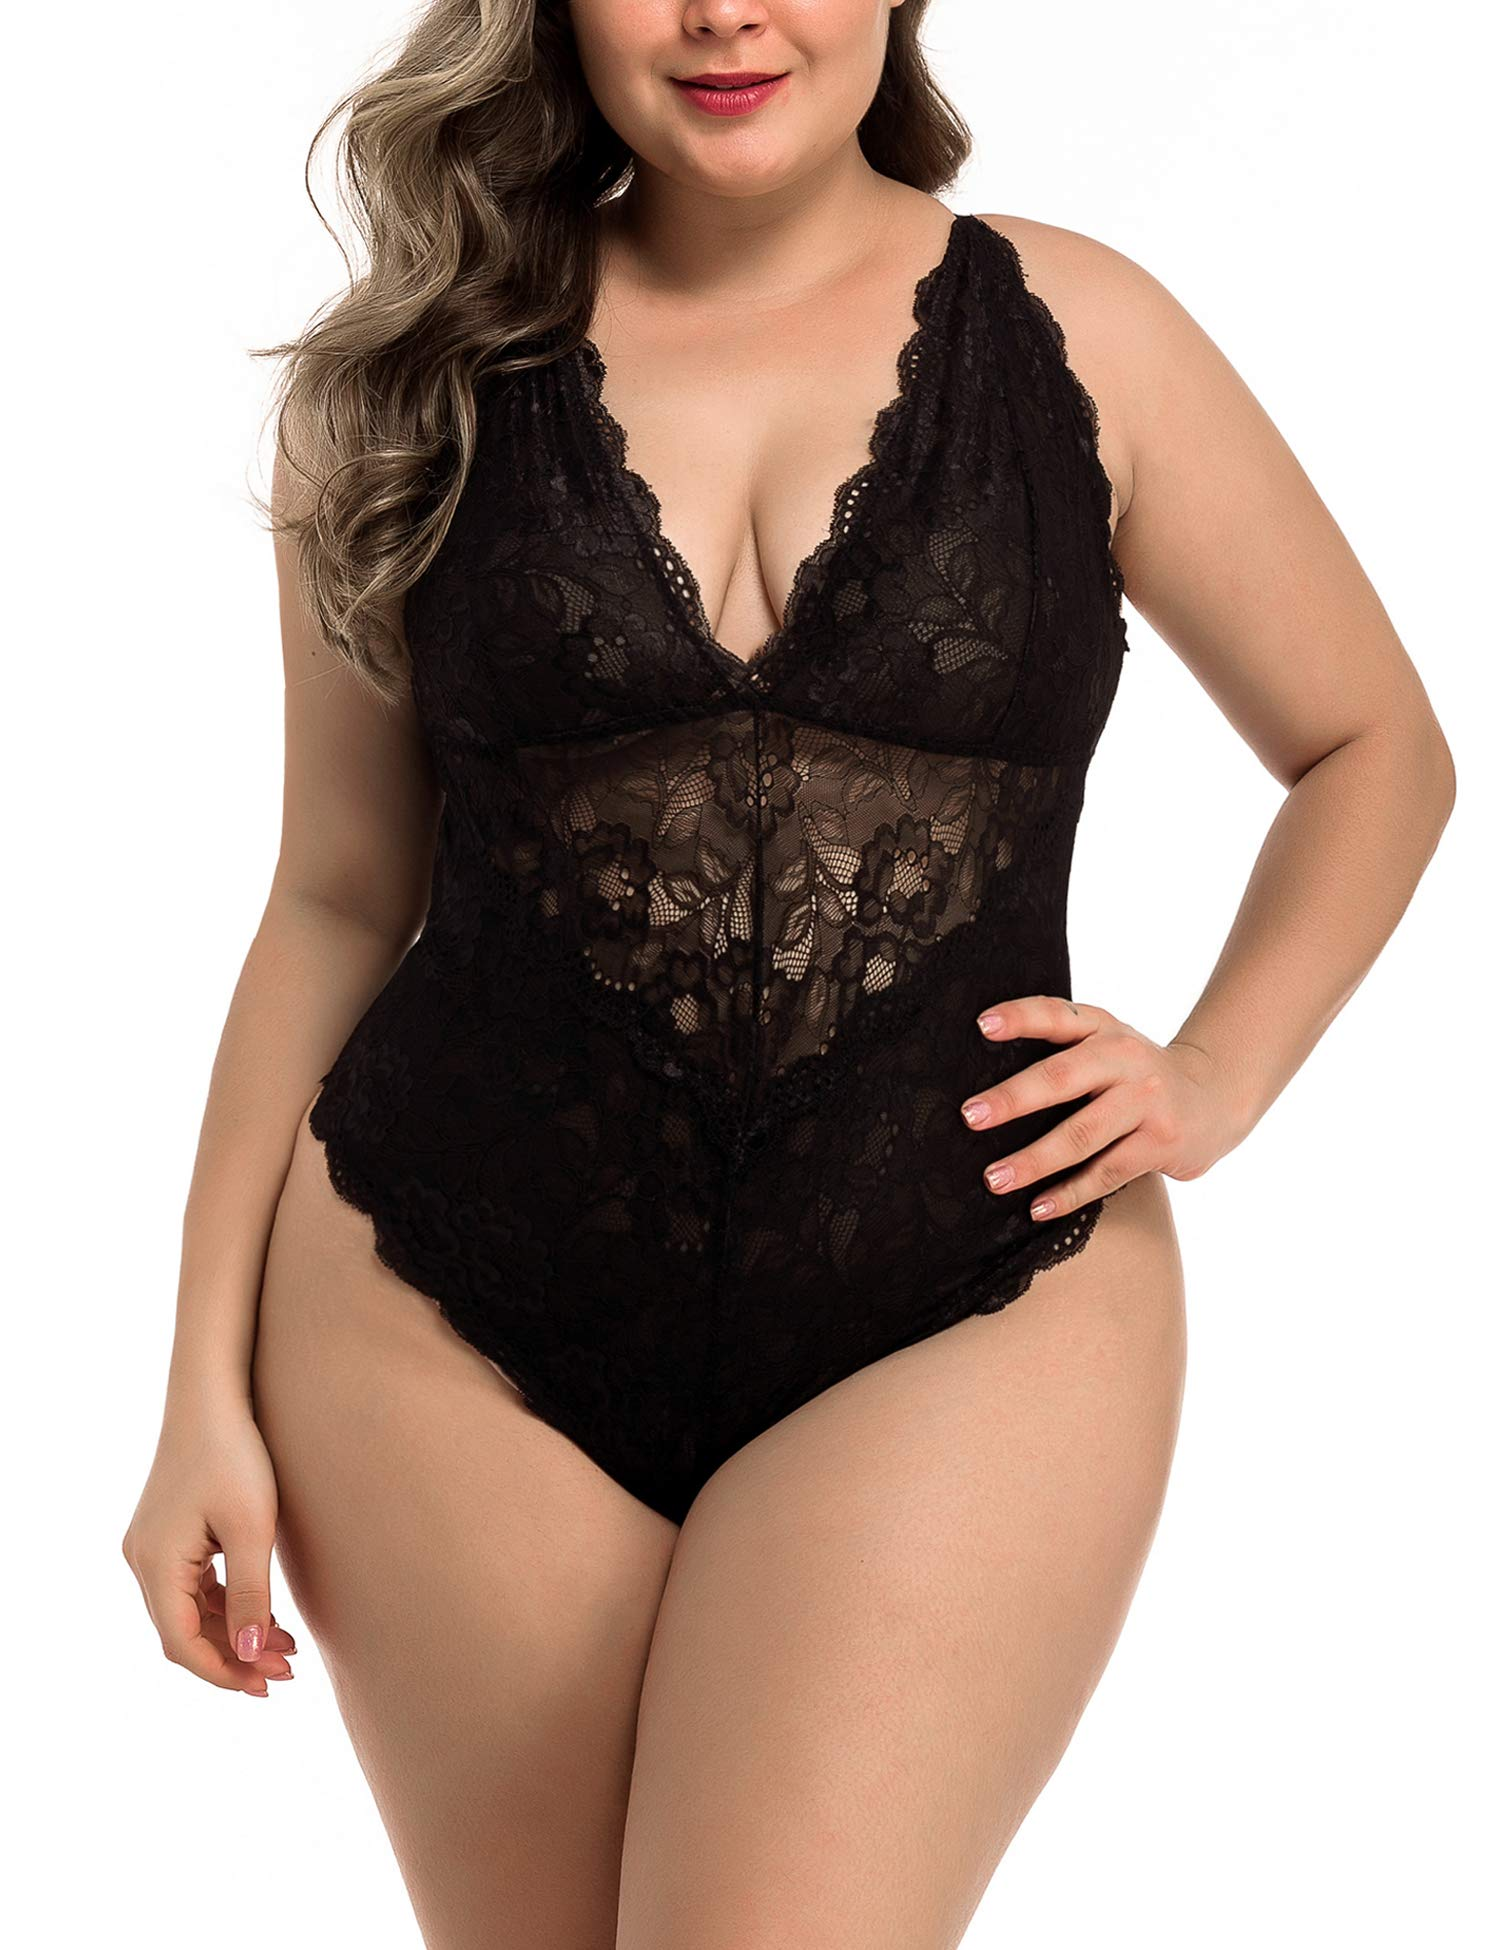 Asiluna Snap Crotch Teddy Plus Size Sexy Lace Bodysuit Lingerie